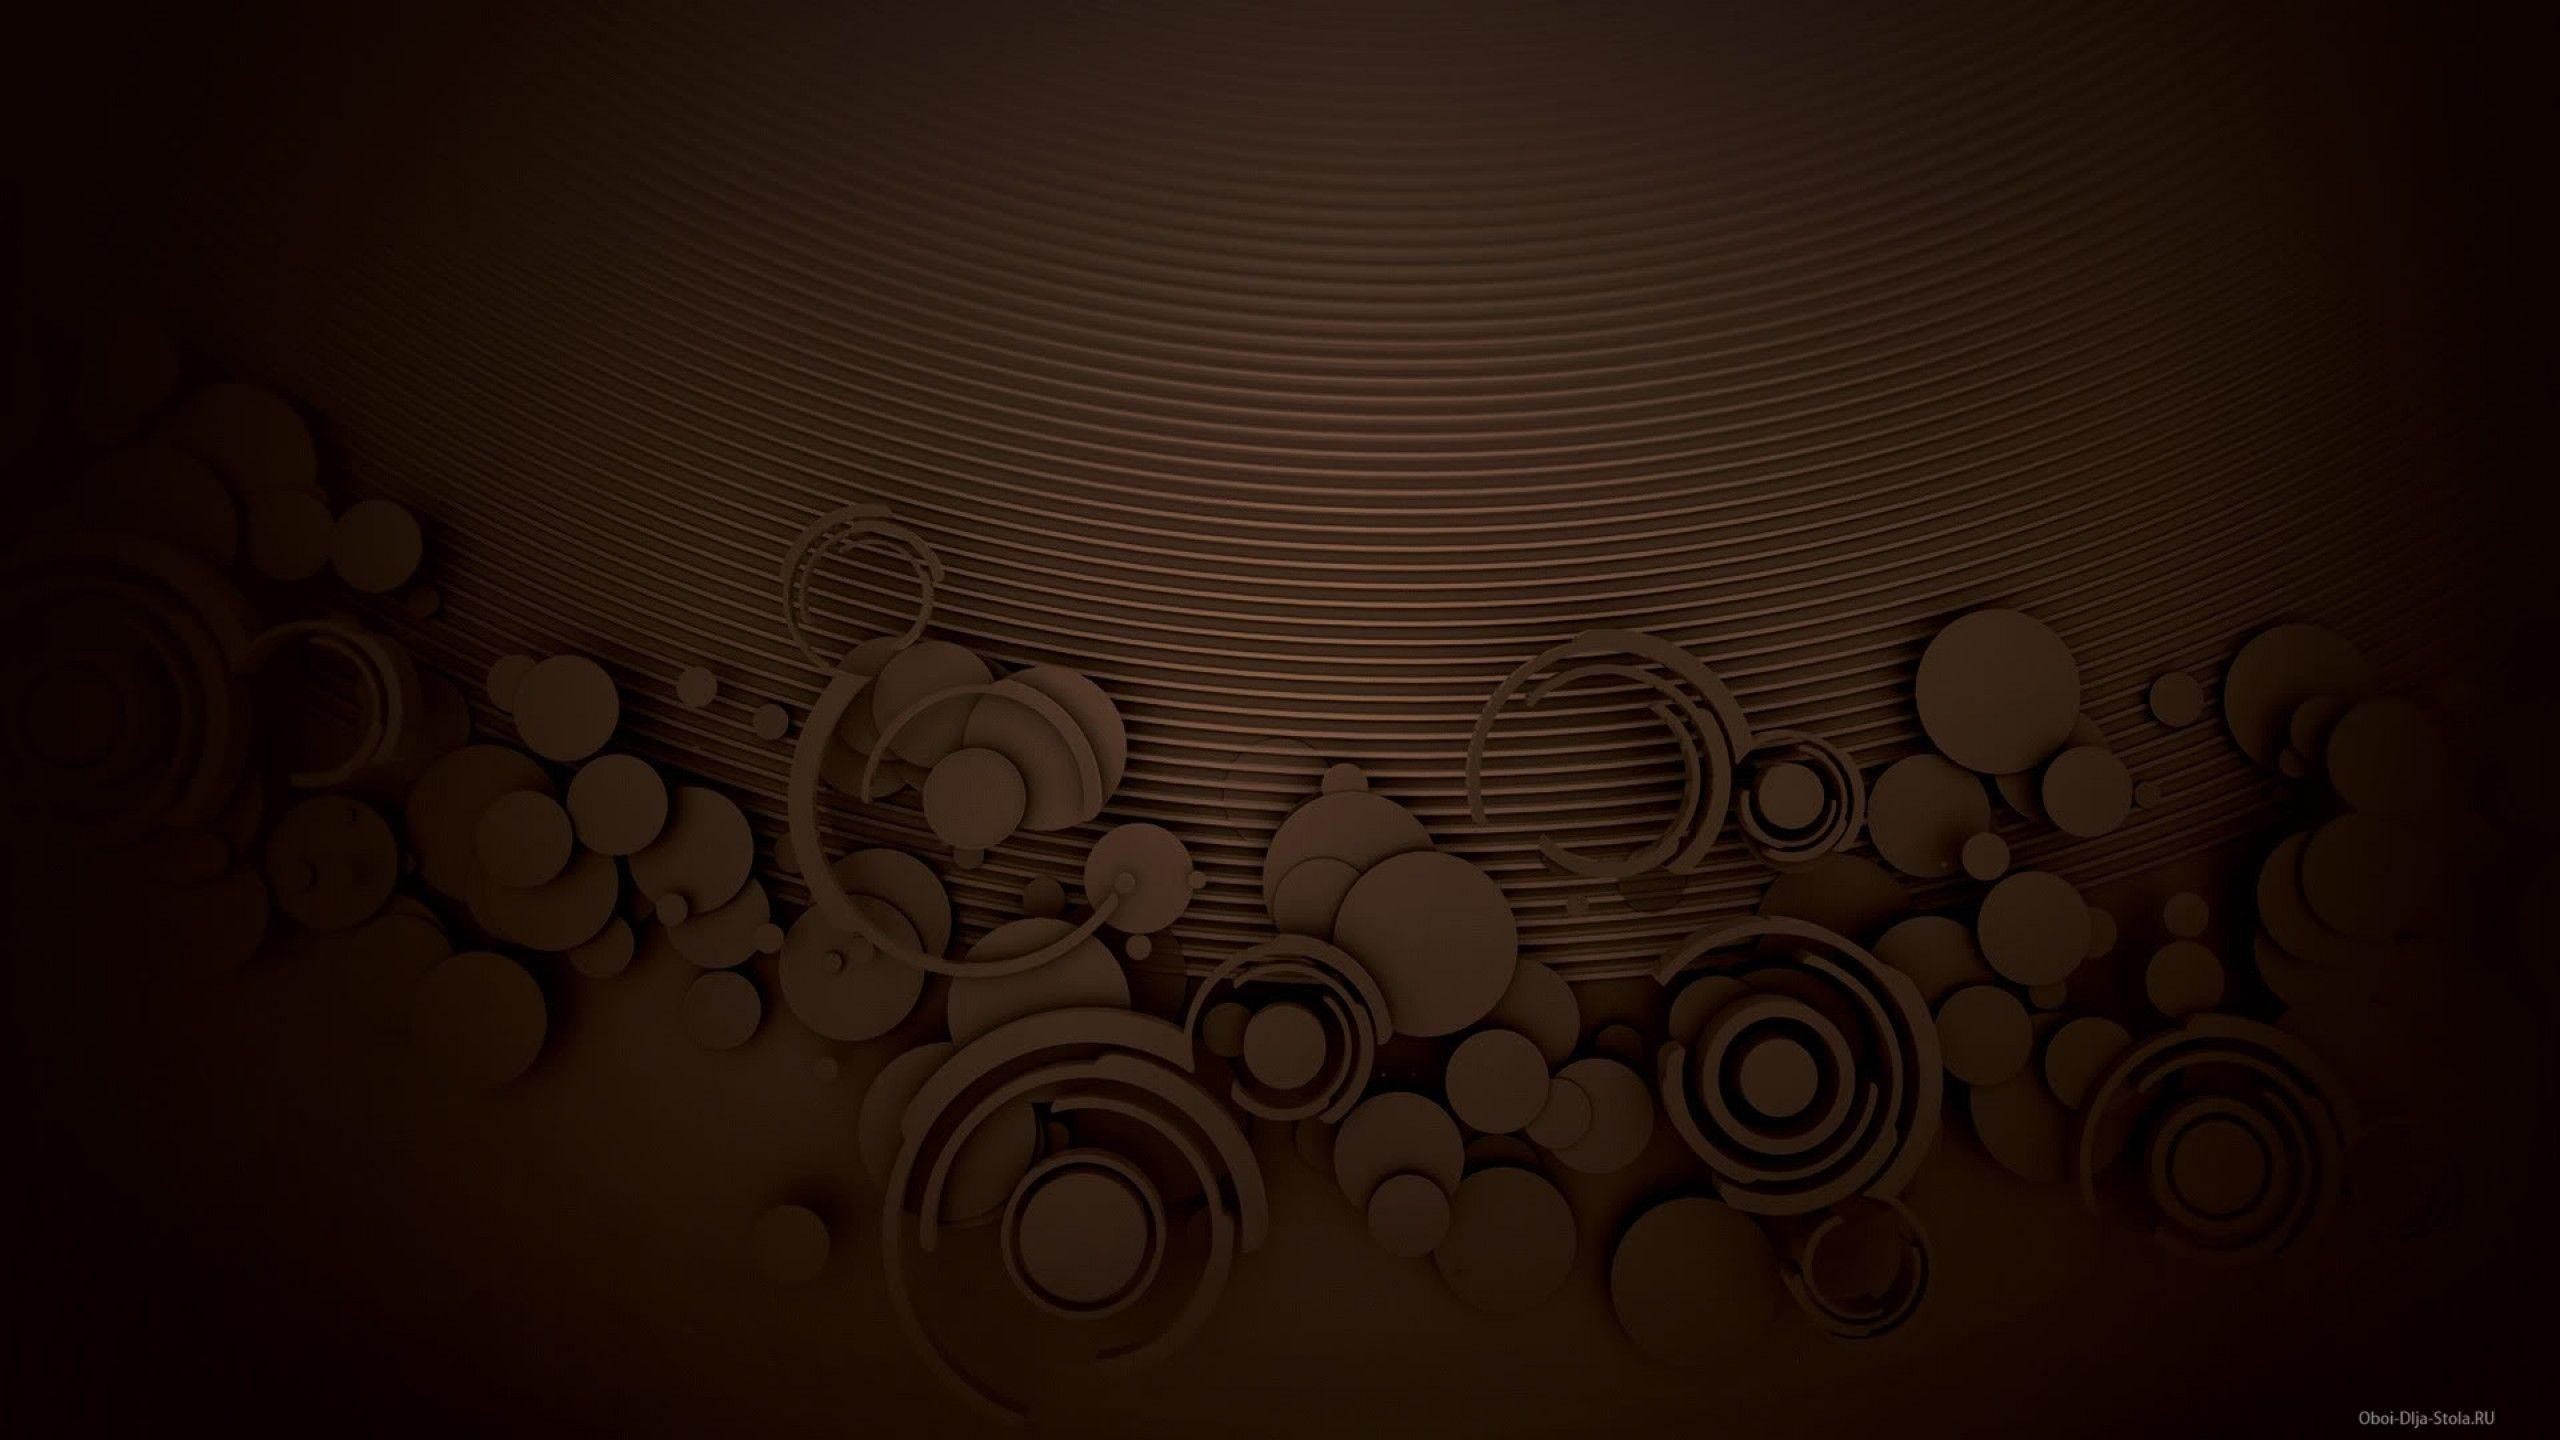 3D patterns on background Wallpaper | HD Wallpapers, backgrounds ...